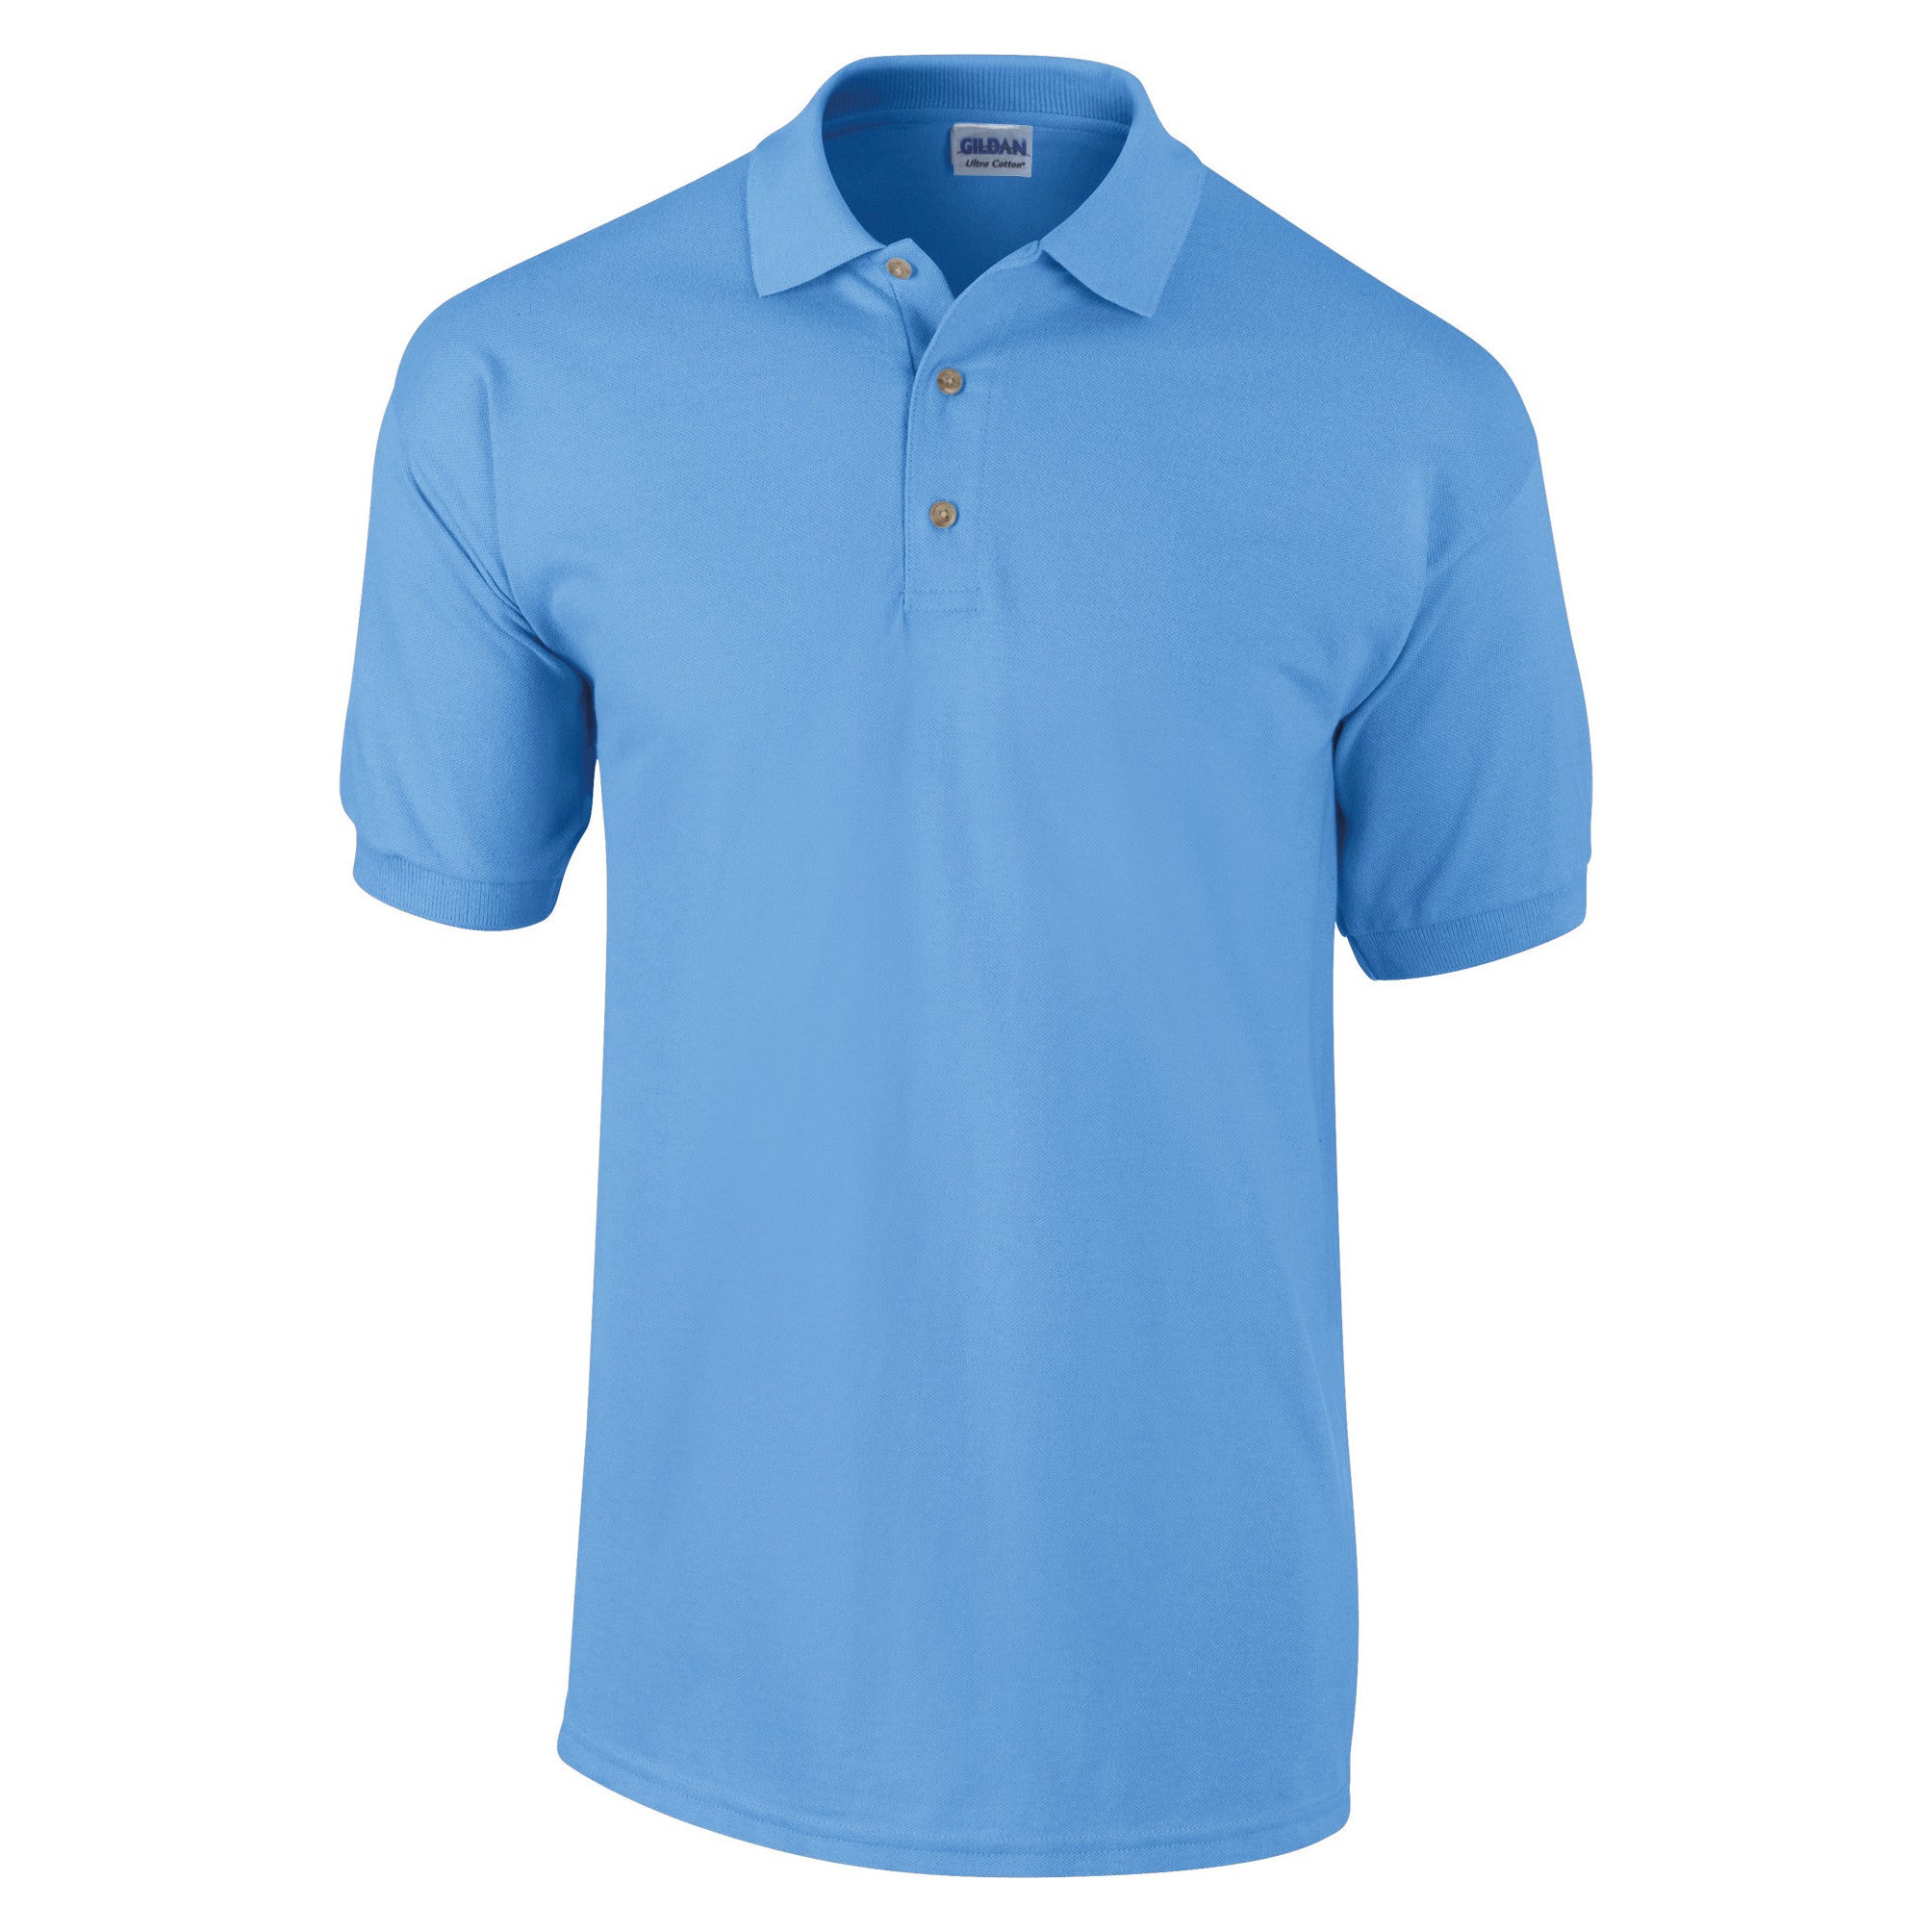 Gildan Ultra Cotton Combed Ringspun Polo Shirt Your Custom Clothing